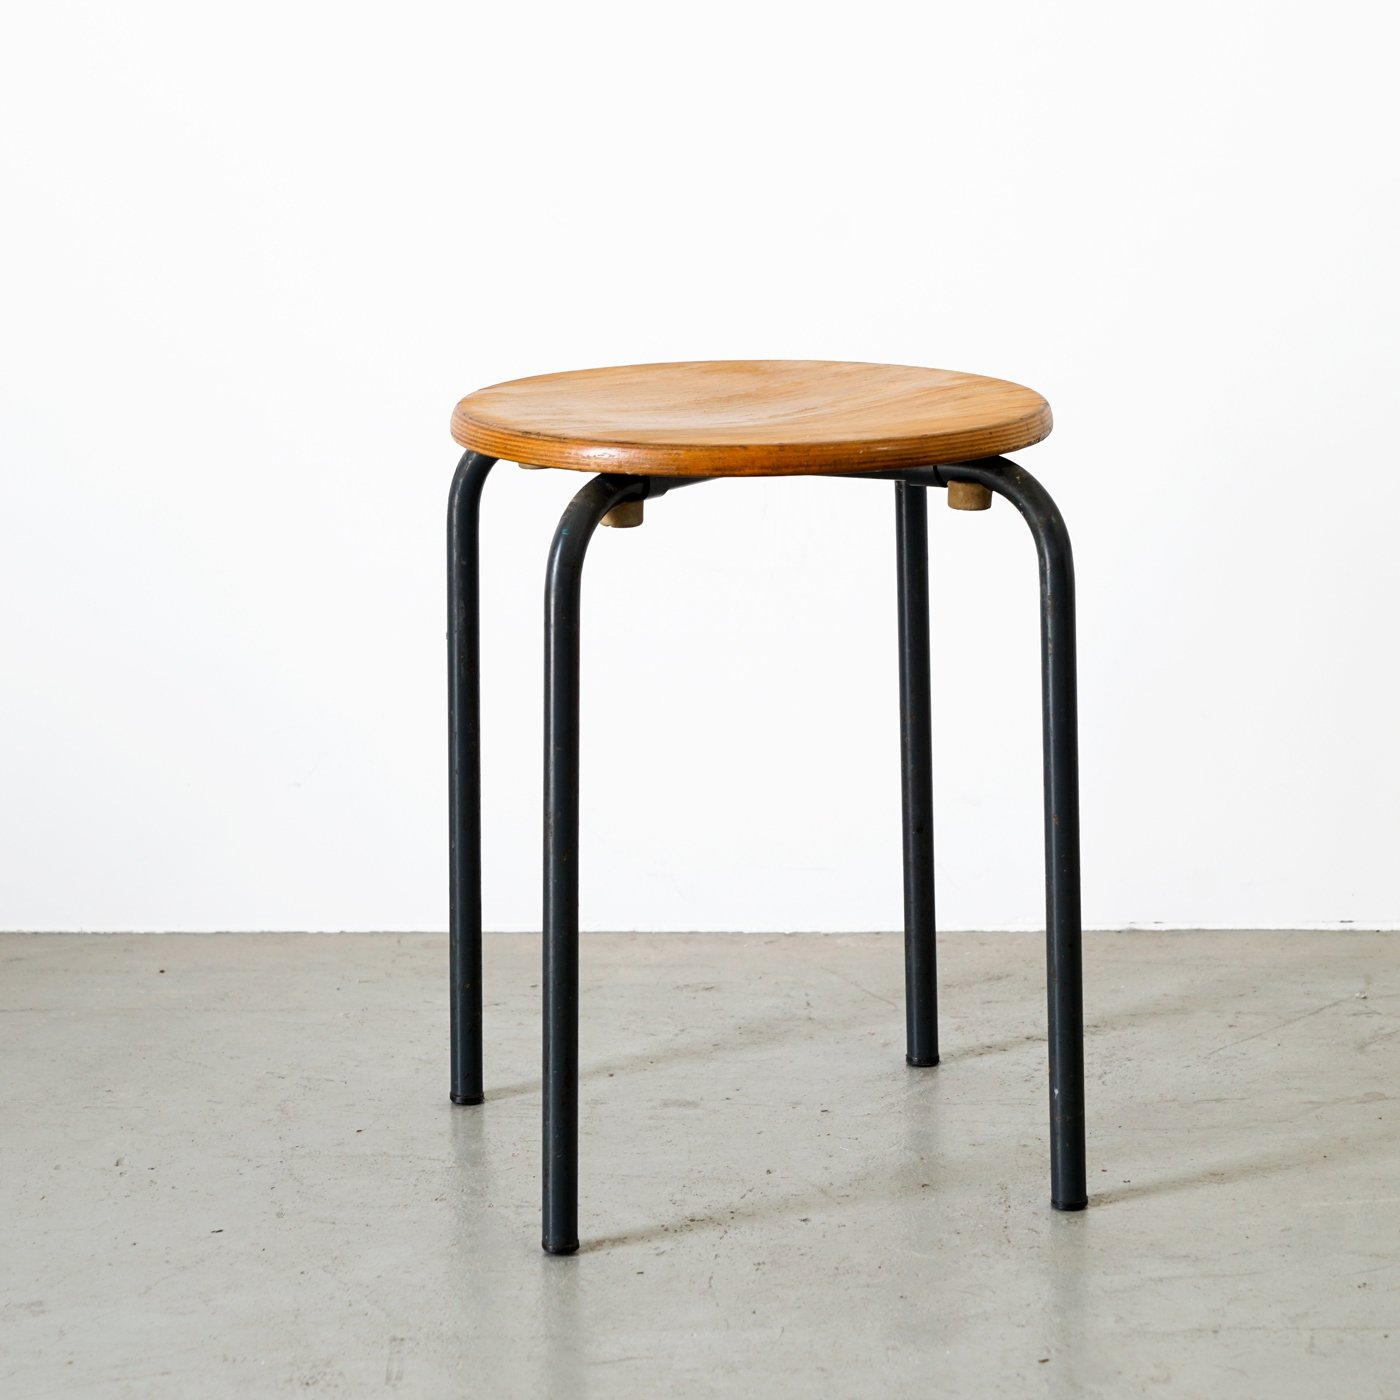 Surprising Industrial Stool With Wooden Seat Black Metal Frame 95154 Gmtry Best Dining Table And Chair Ideas Images Gmtryco